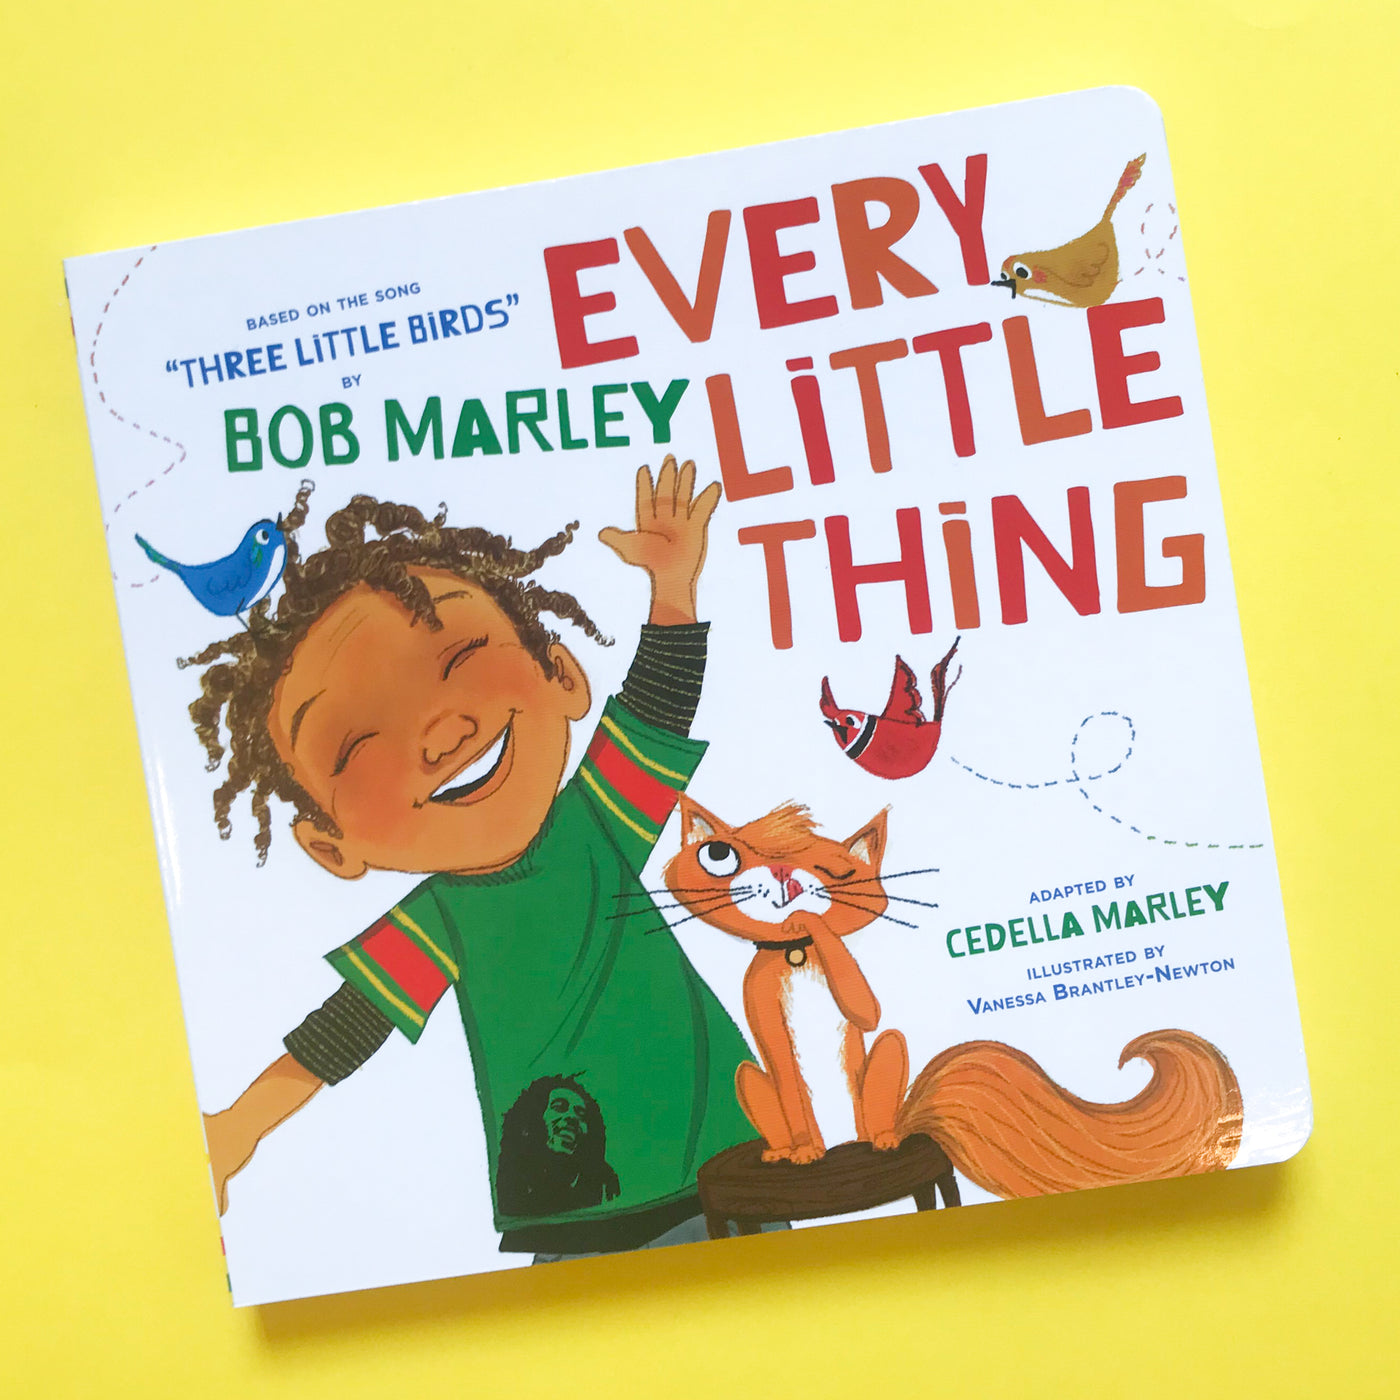 Every Little Thing by Bob and Cedella Marley